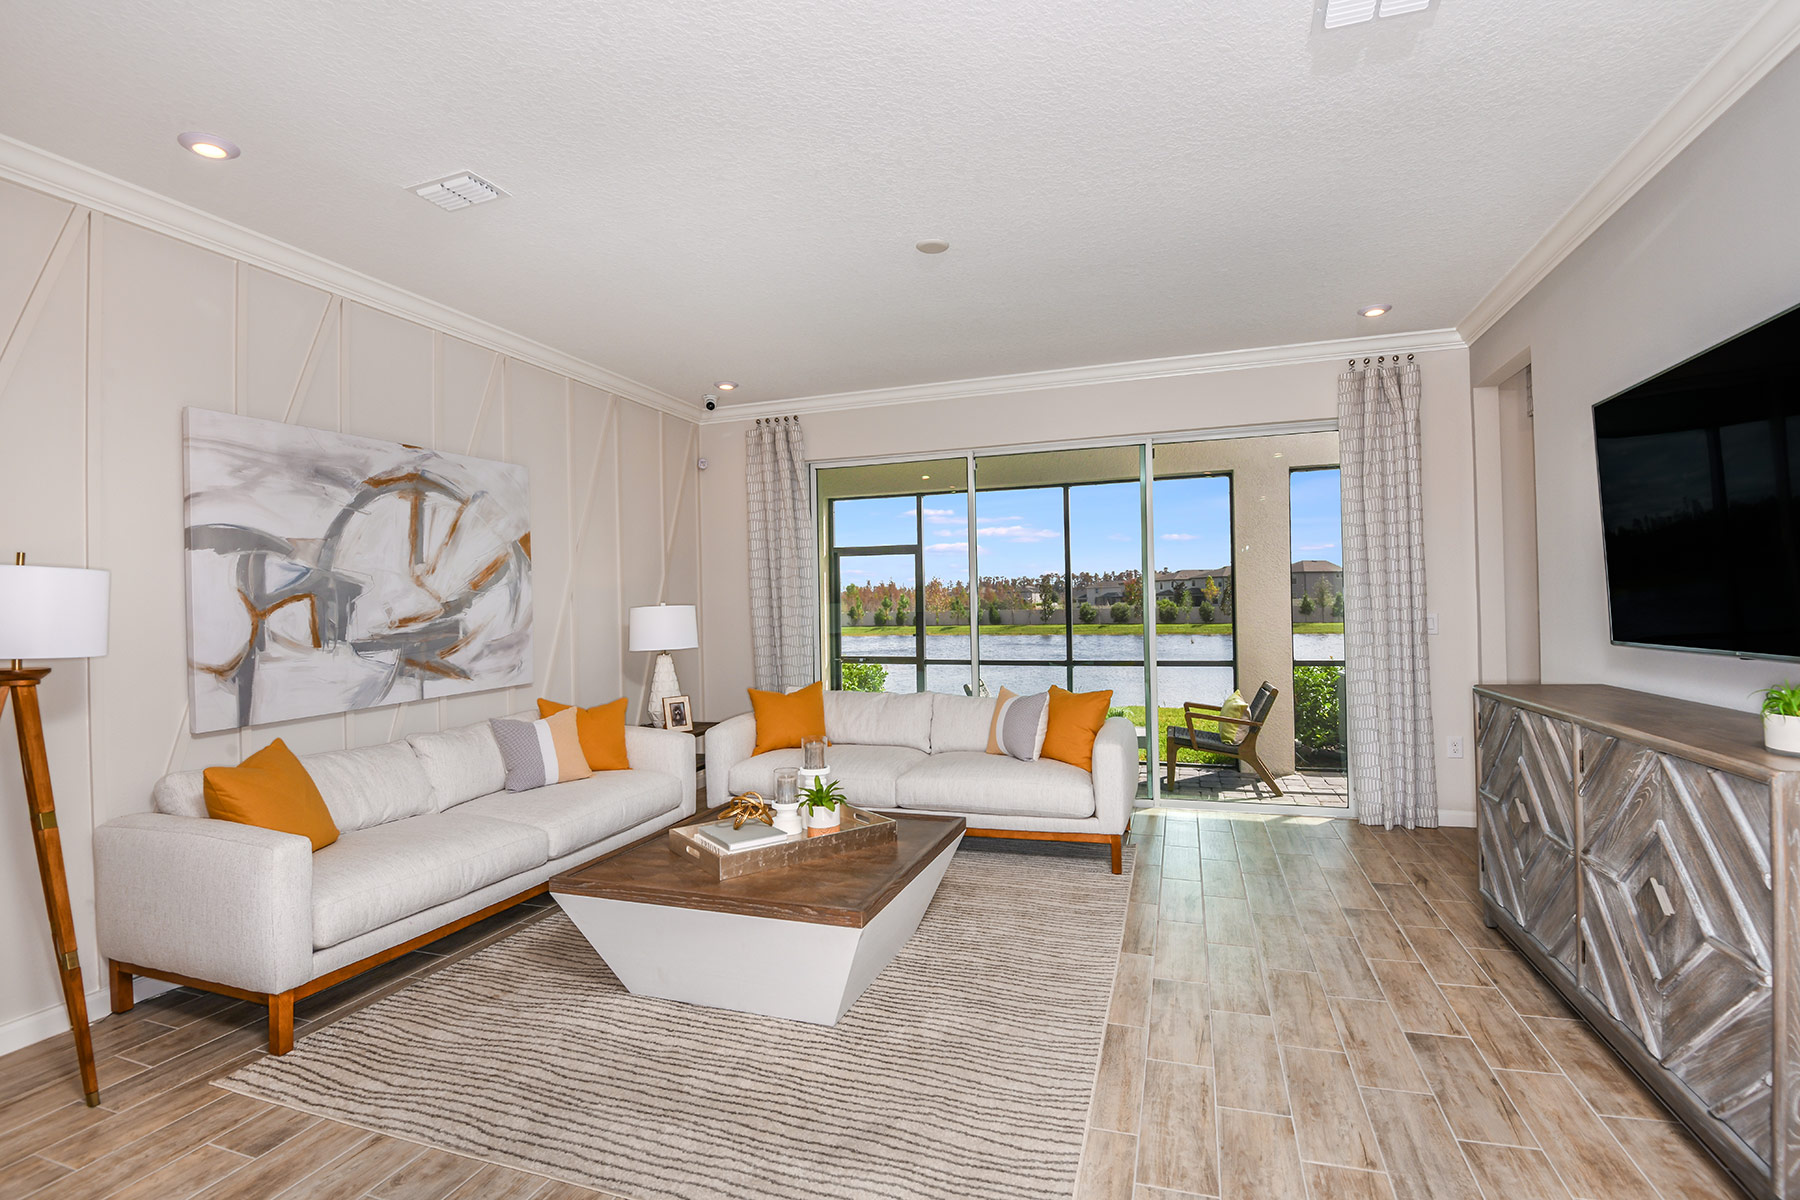 Sebring Plan Greatroom at Parkview at Long Lake Ranch in Lutz Florida by Mattamy Homes